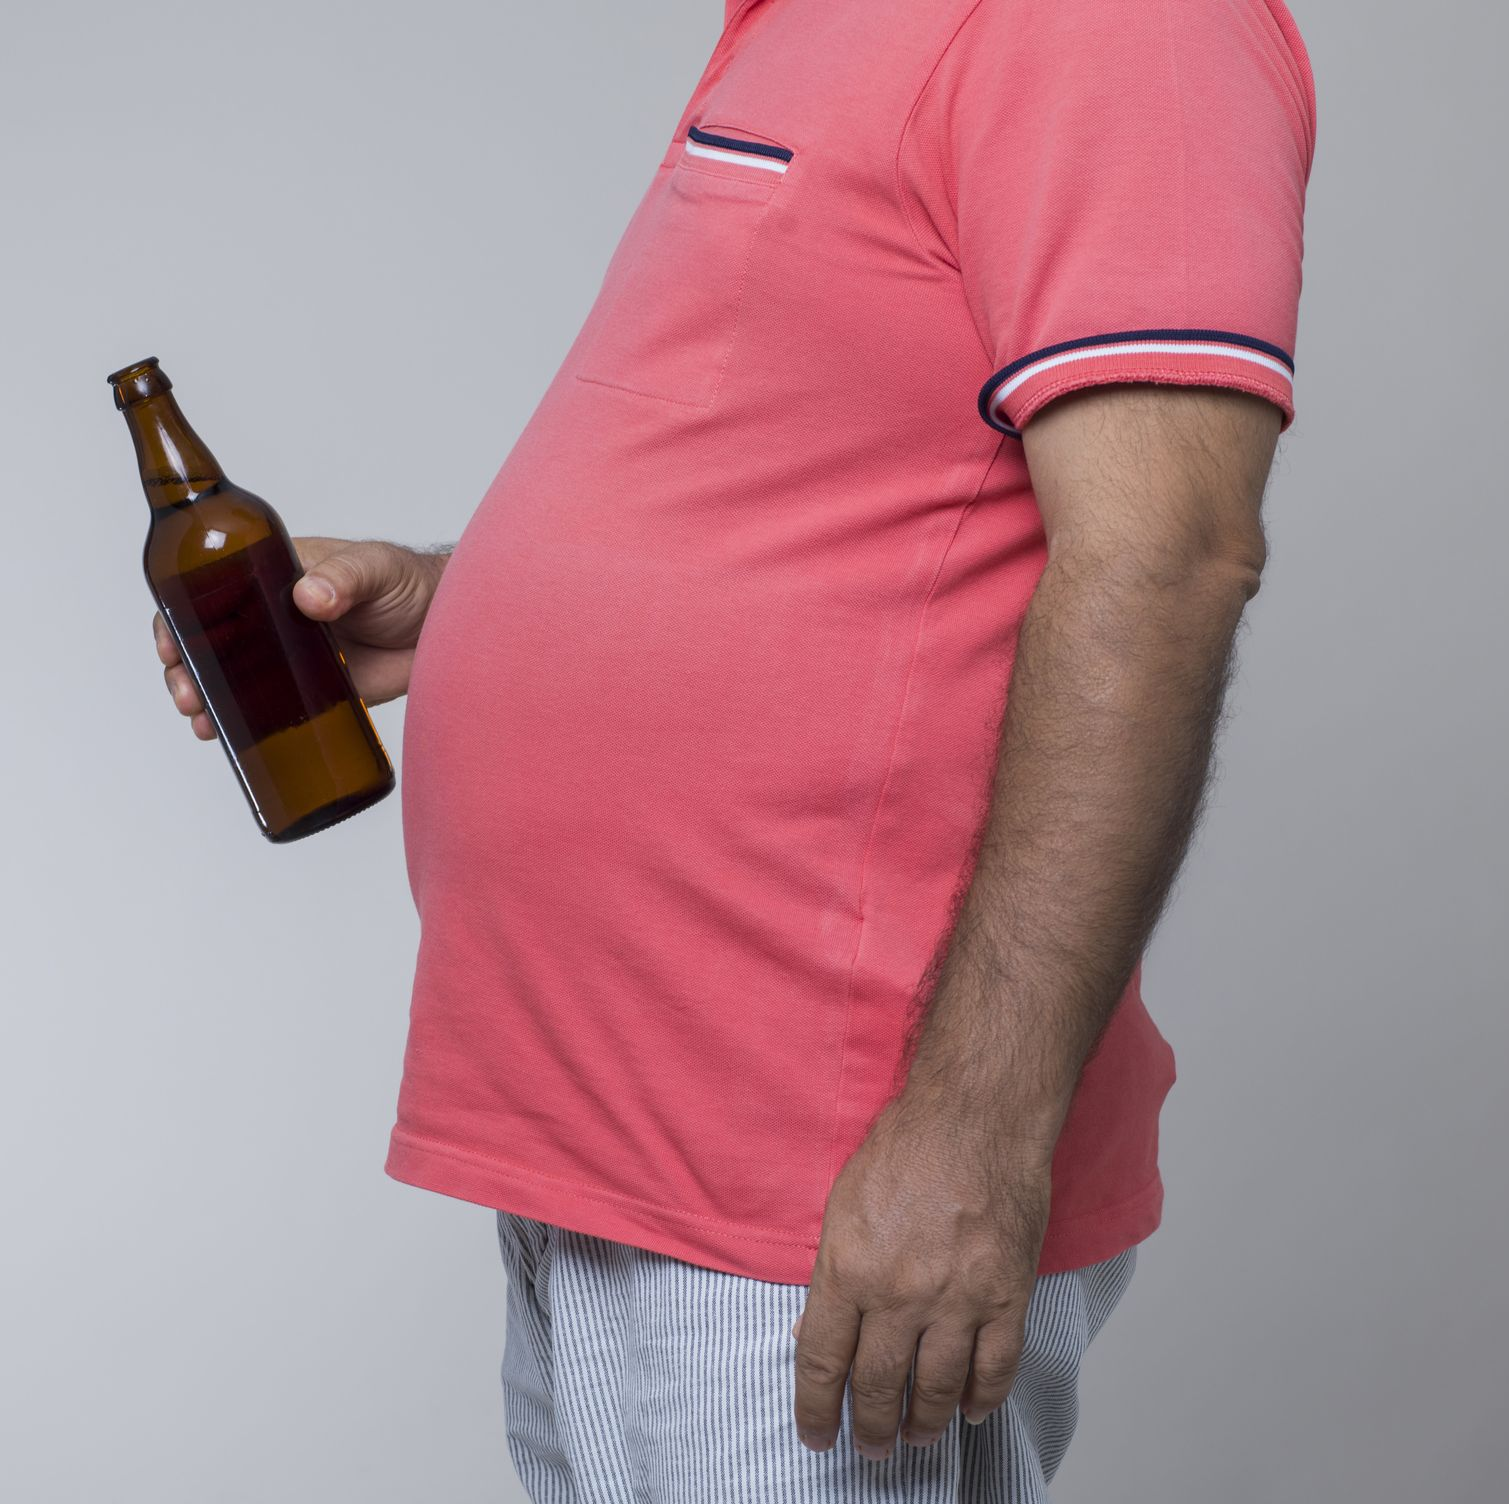 Wondering Why Your Beer Belly Is Hard? Here Are 5 Possible Causes.